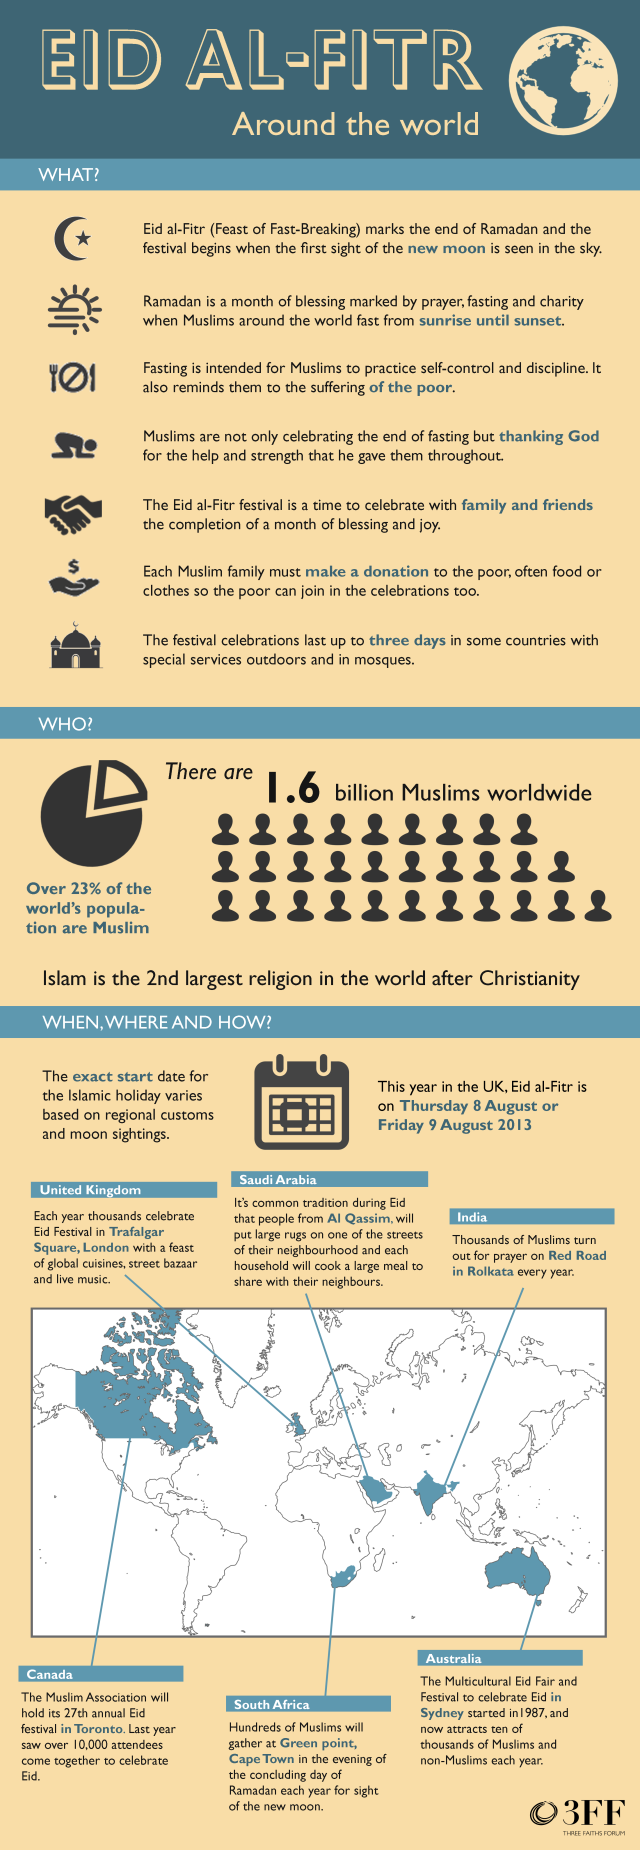 #Eid al-Fitr Around the World - #infographic